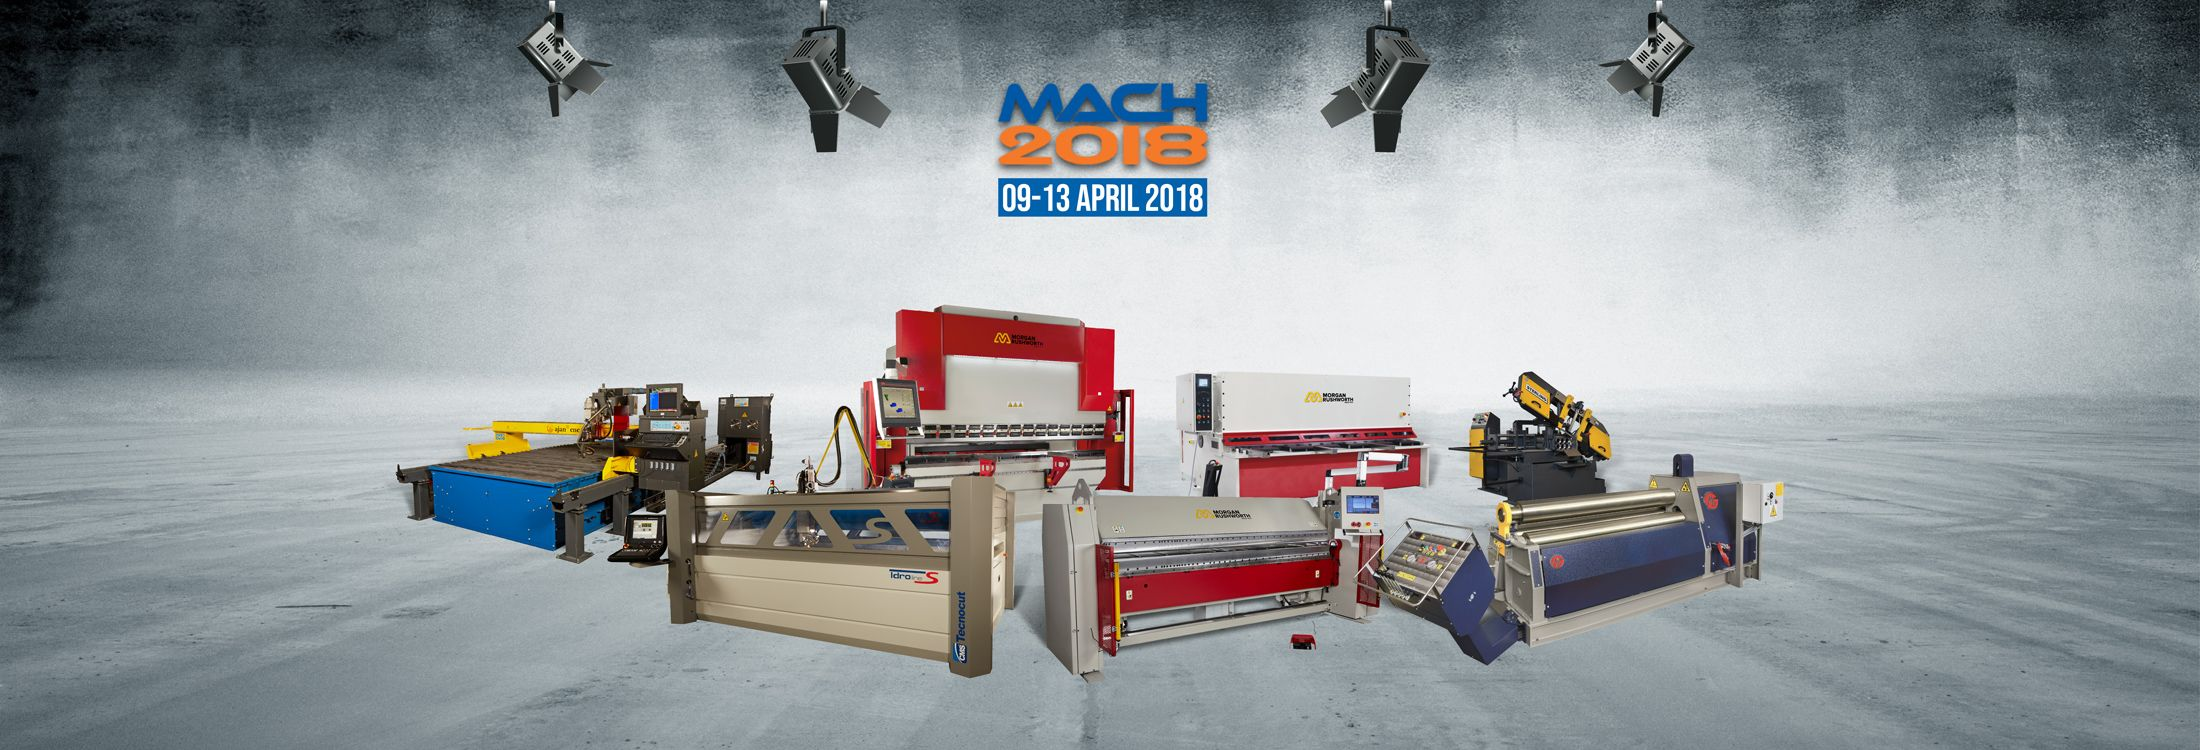 WE'RE COMING TO MACH 2018